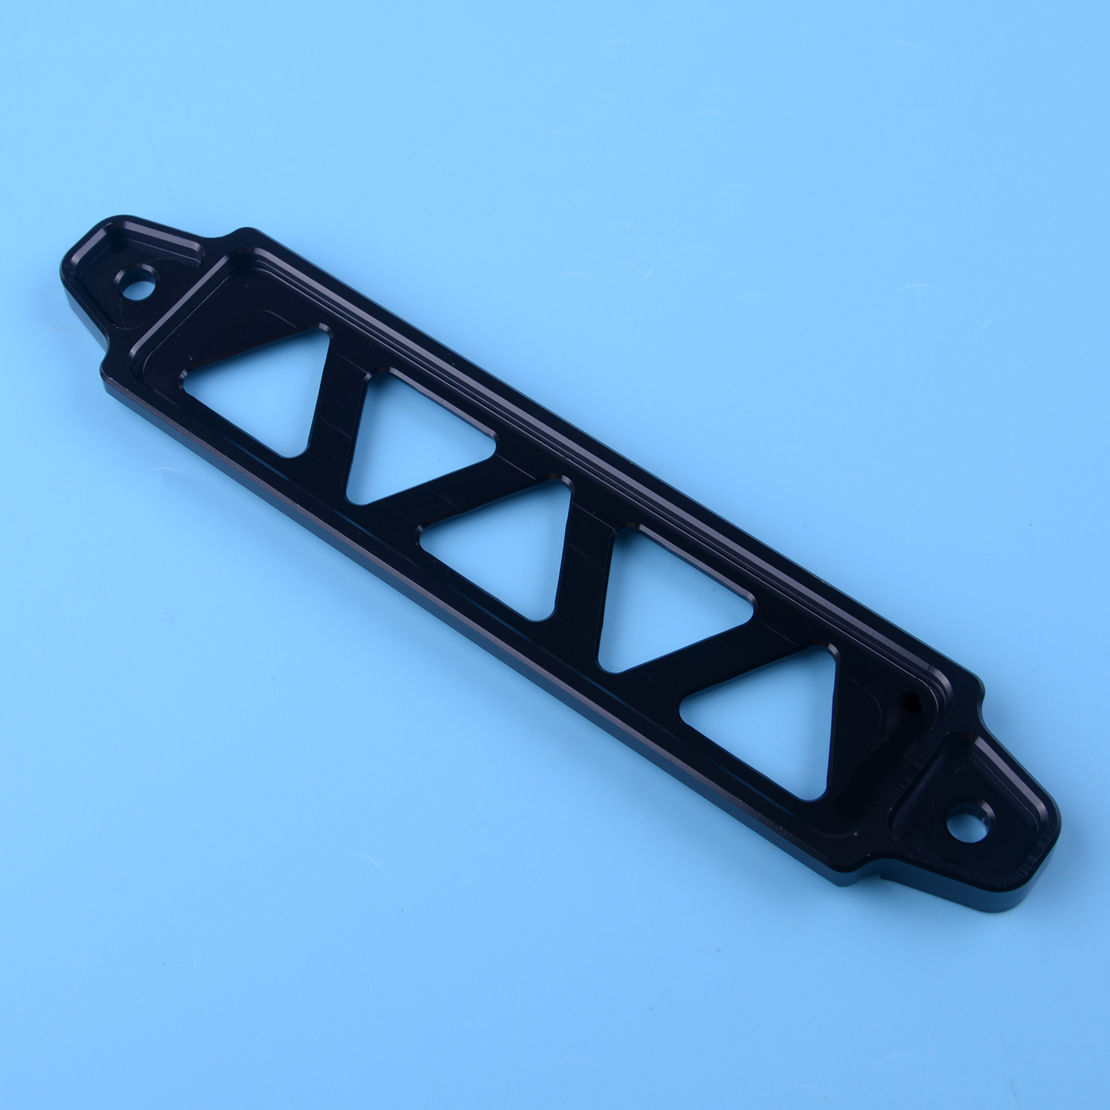 Battery Tray Lightweight,Fits Glass Fiber Battery Box,Includes Nuts/&Washer OEBTB